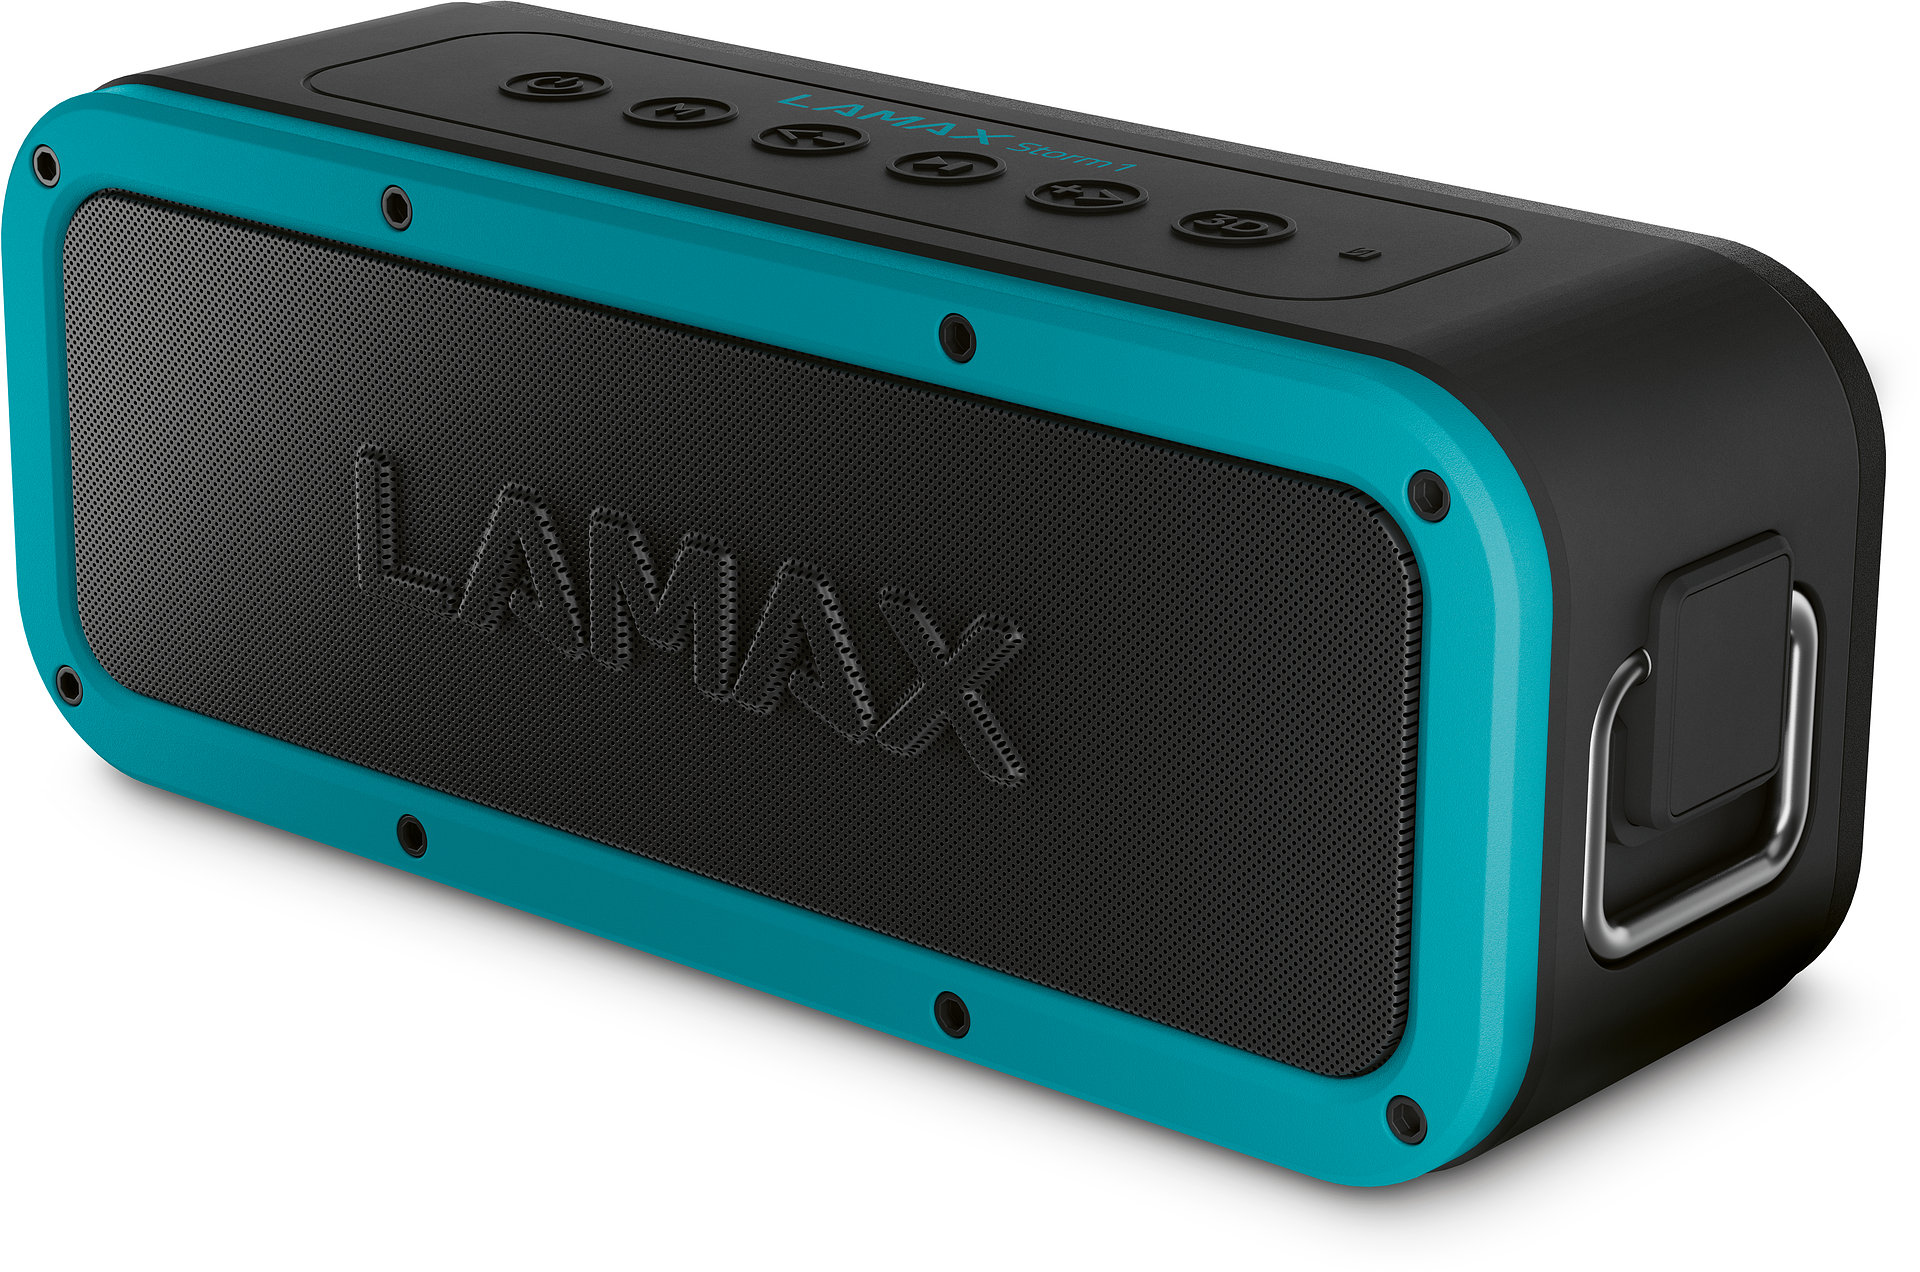 LAMAX Storm1 Turquoise